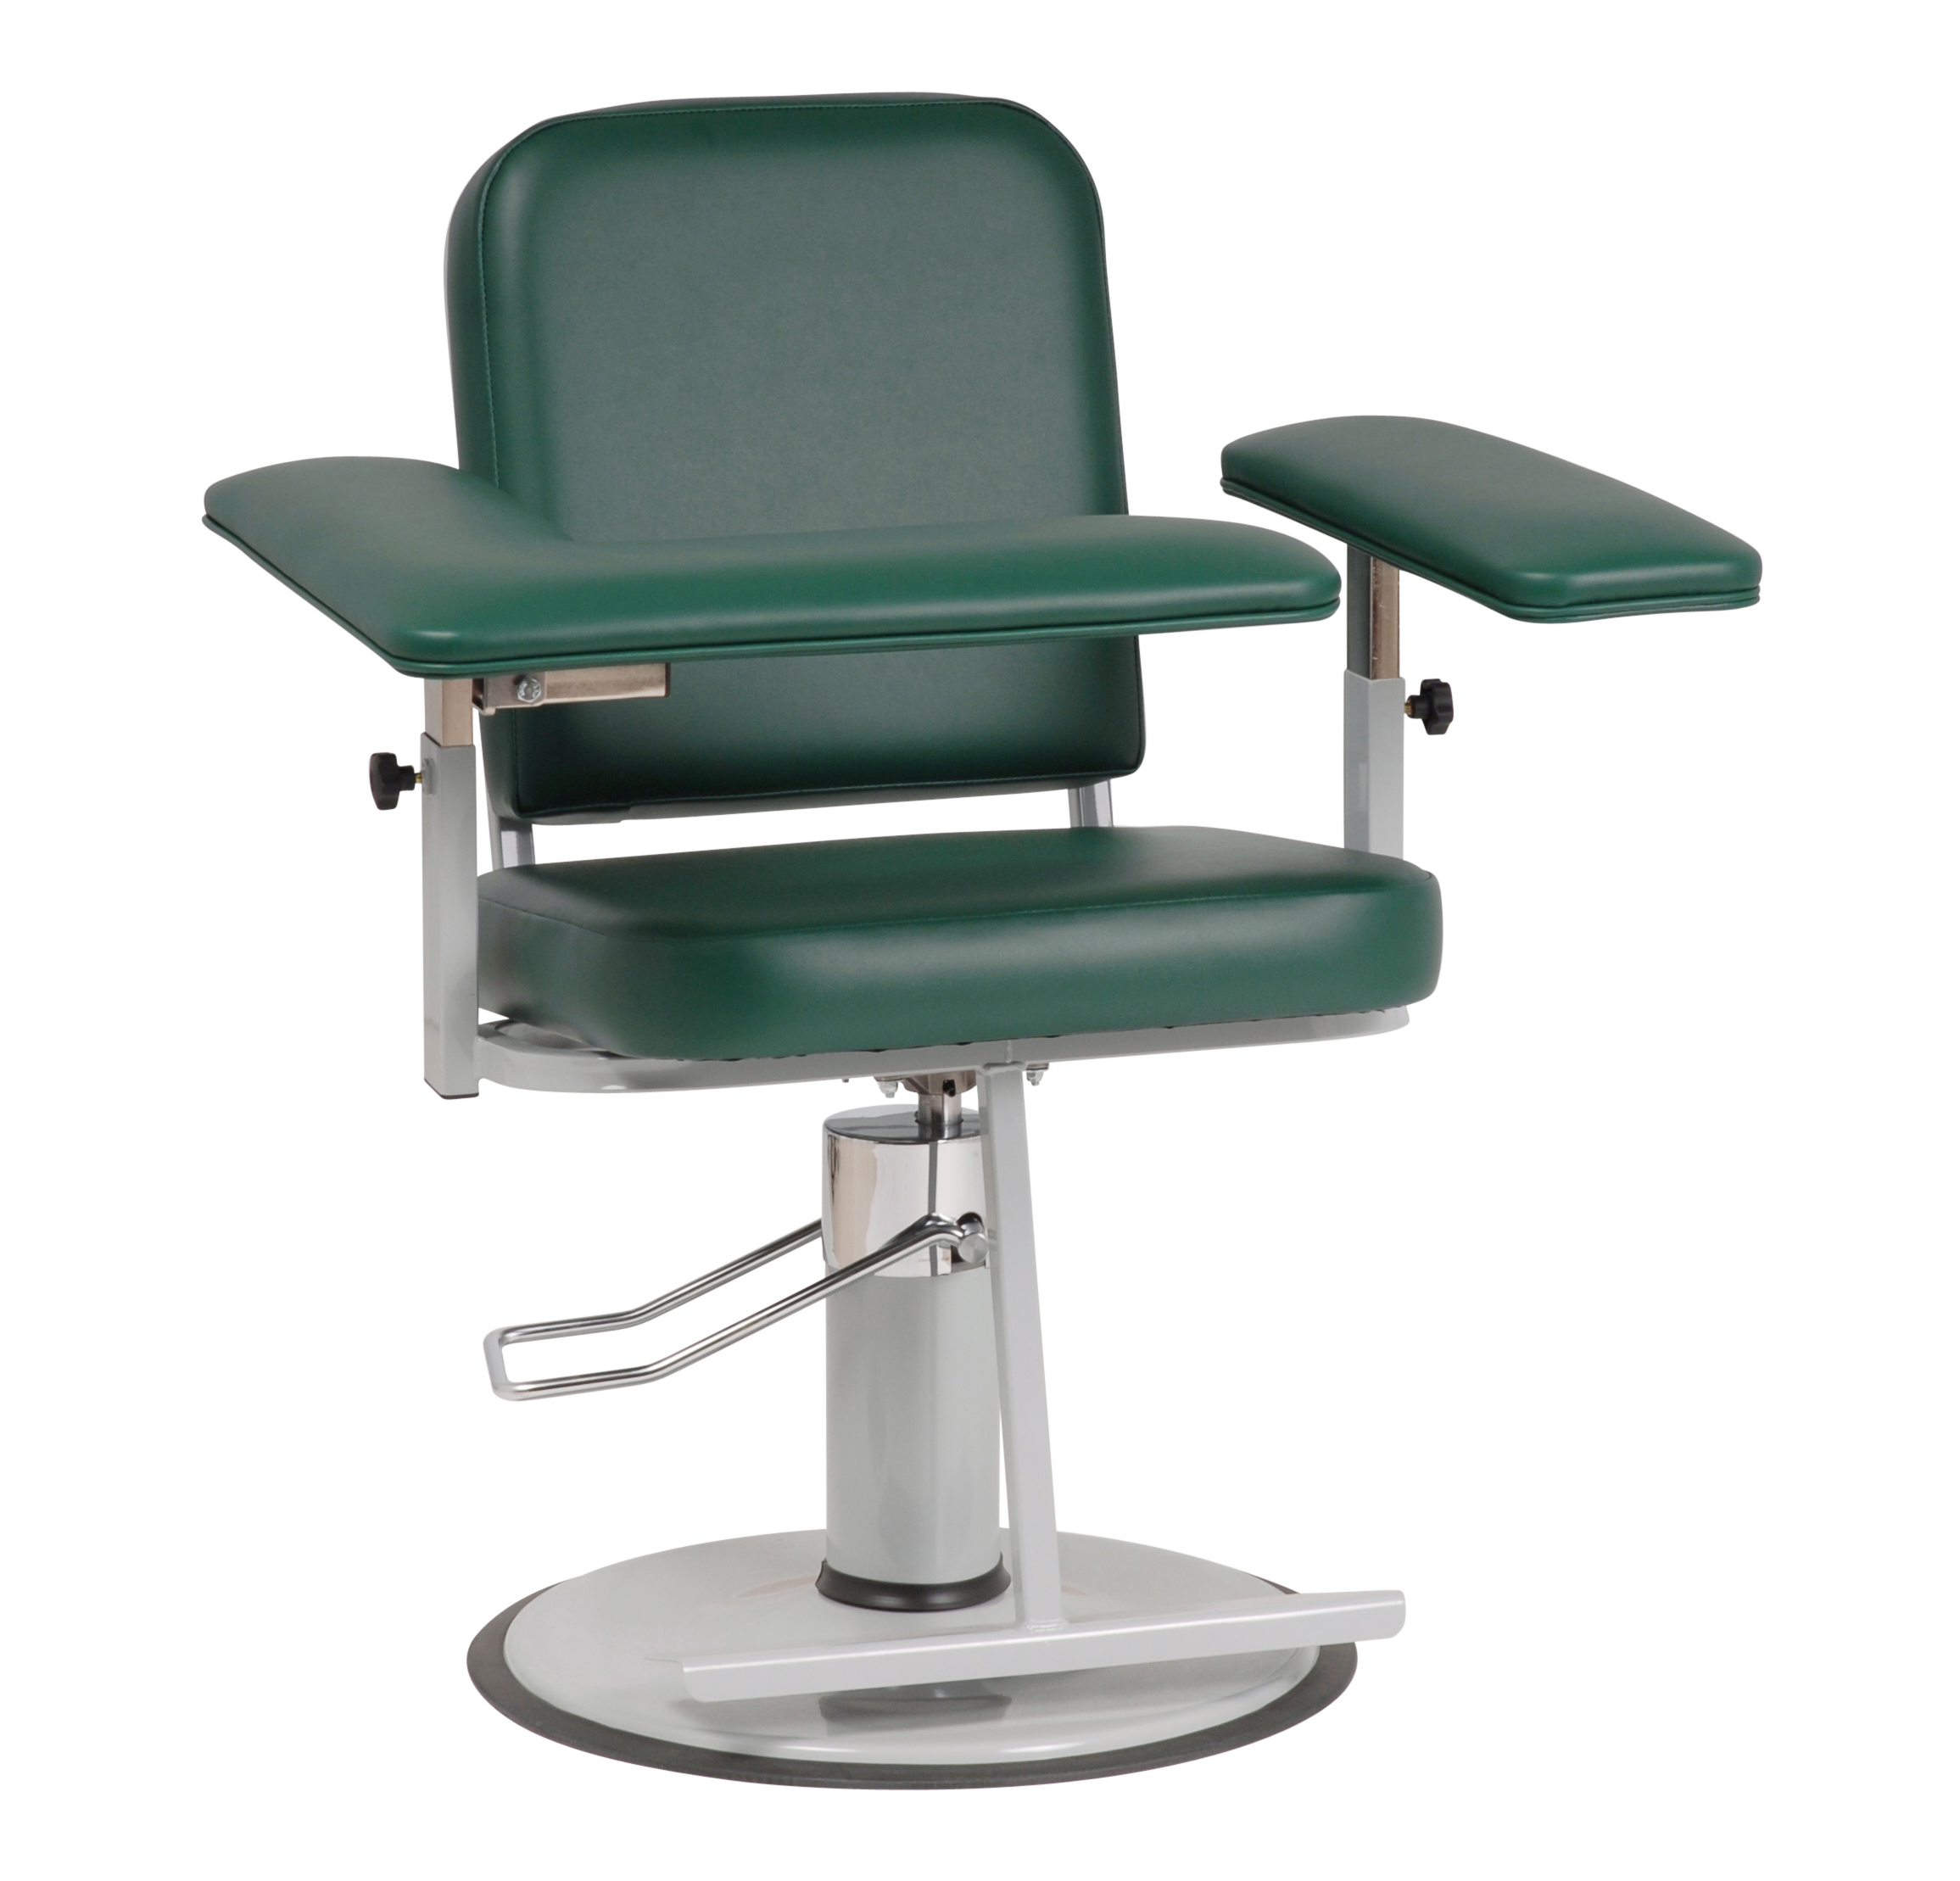 Comfort Chair Price Phlebotomy Chairs For Blood Draw Custom Comfort Medtek